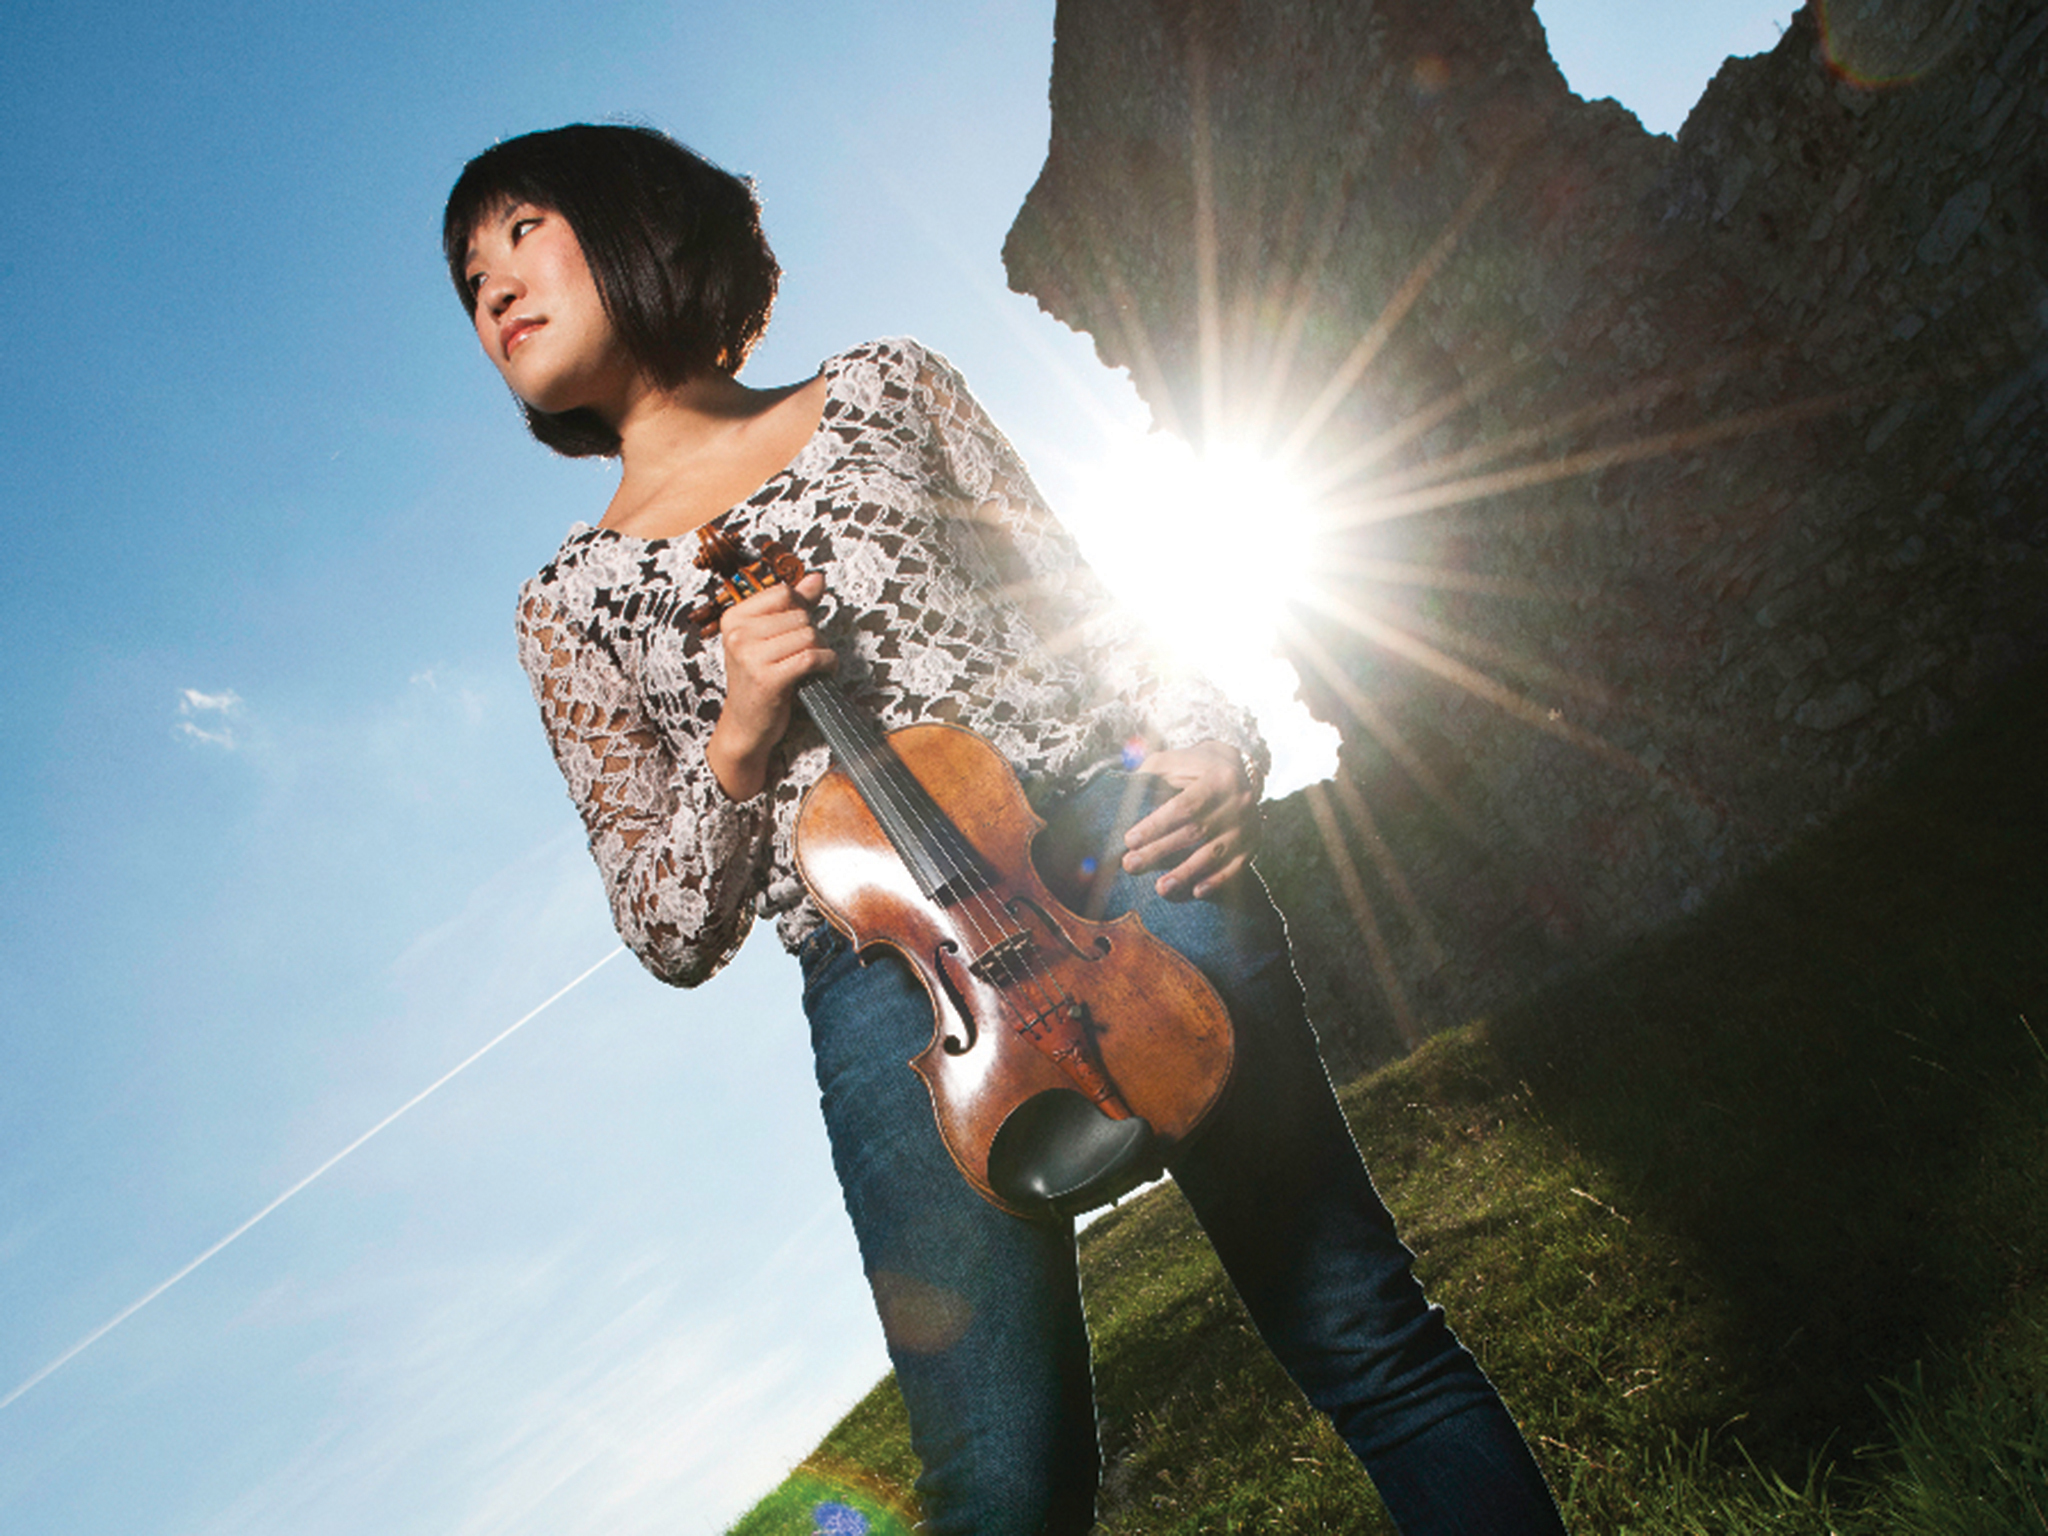 Interview: Violinist Tianwa Yang on Mozart and staying childlike